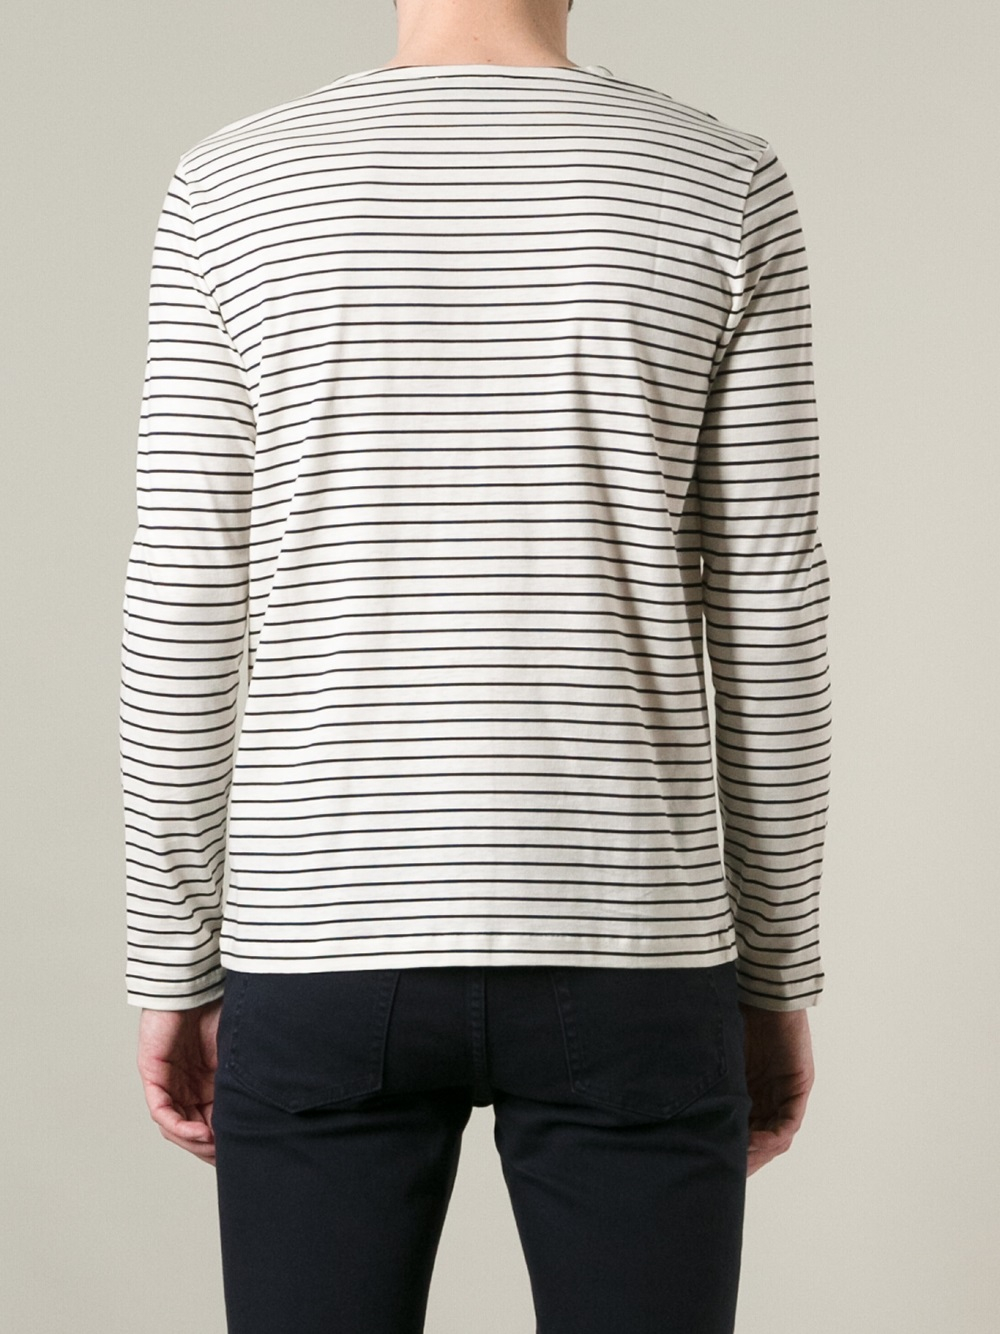 Lyst a p c mariniere tshirt in white for men for Apc white t shirt